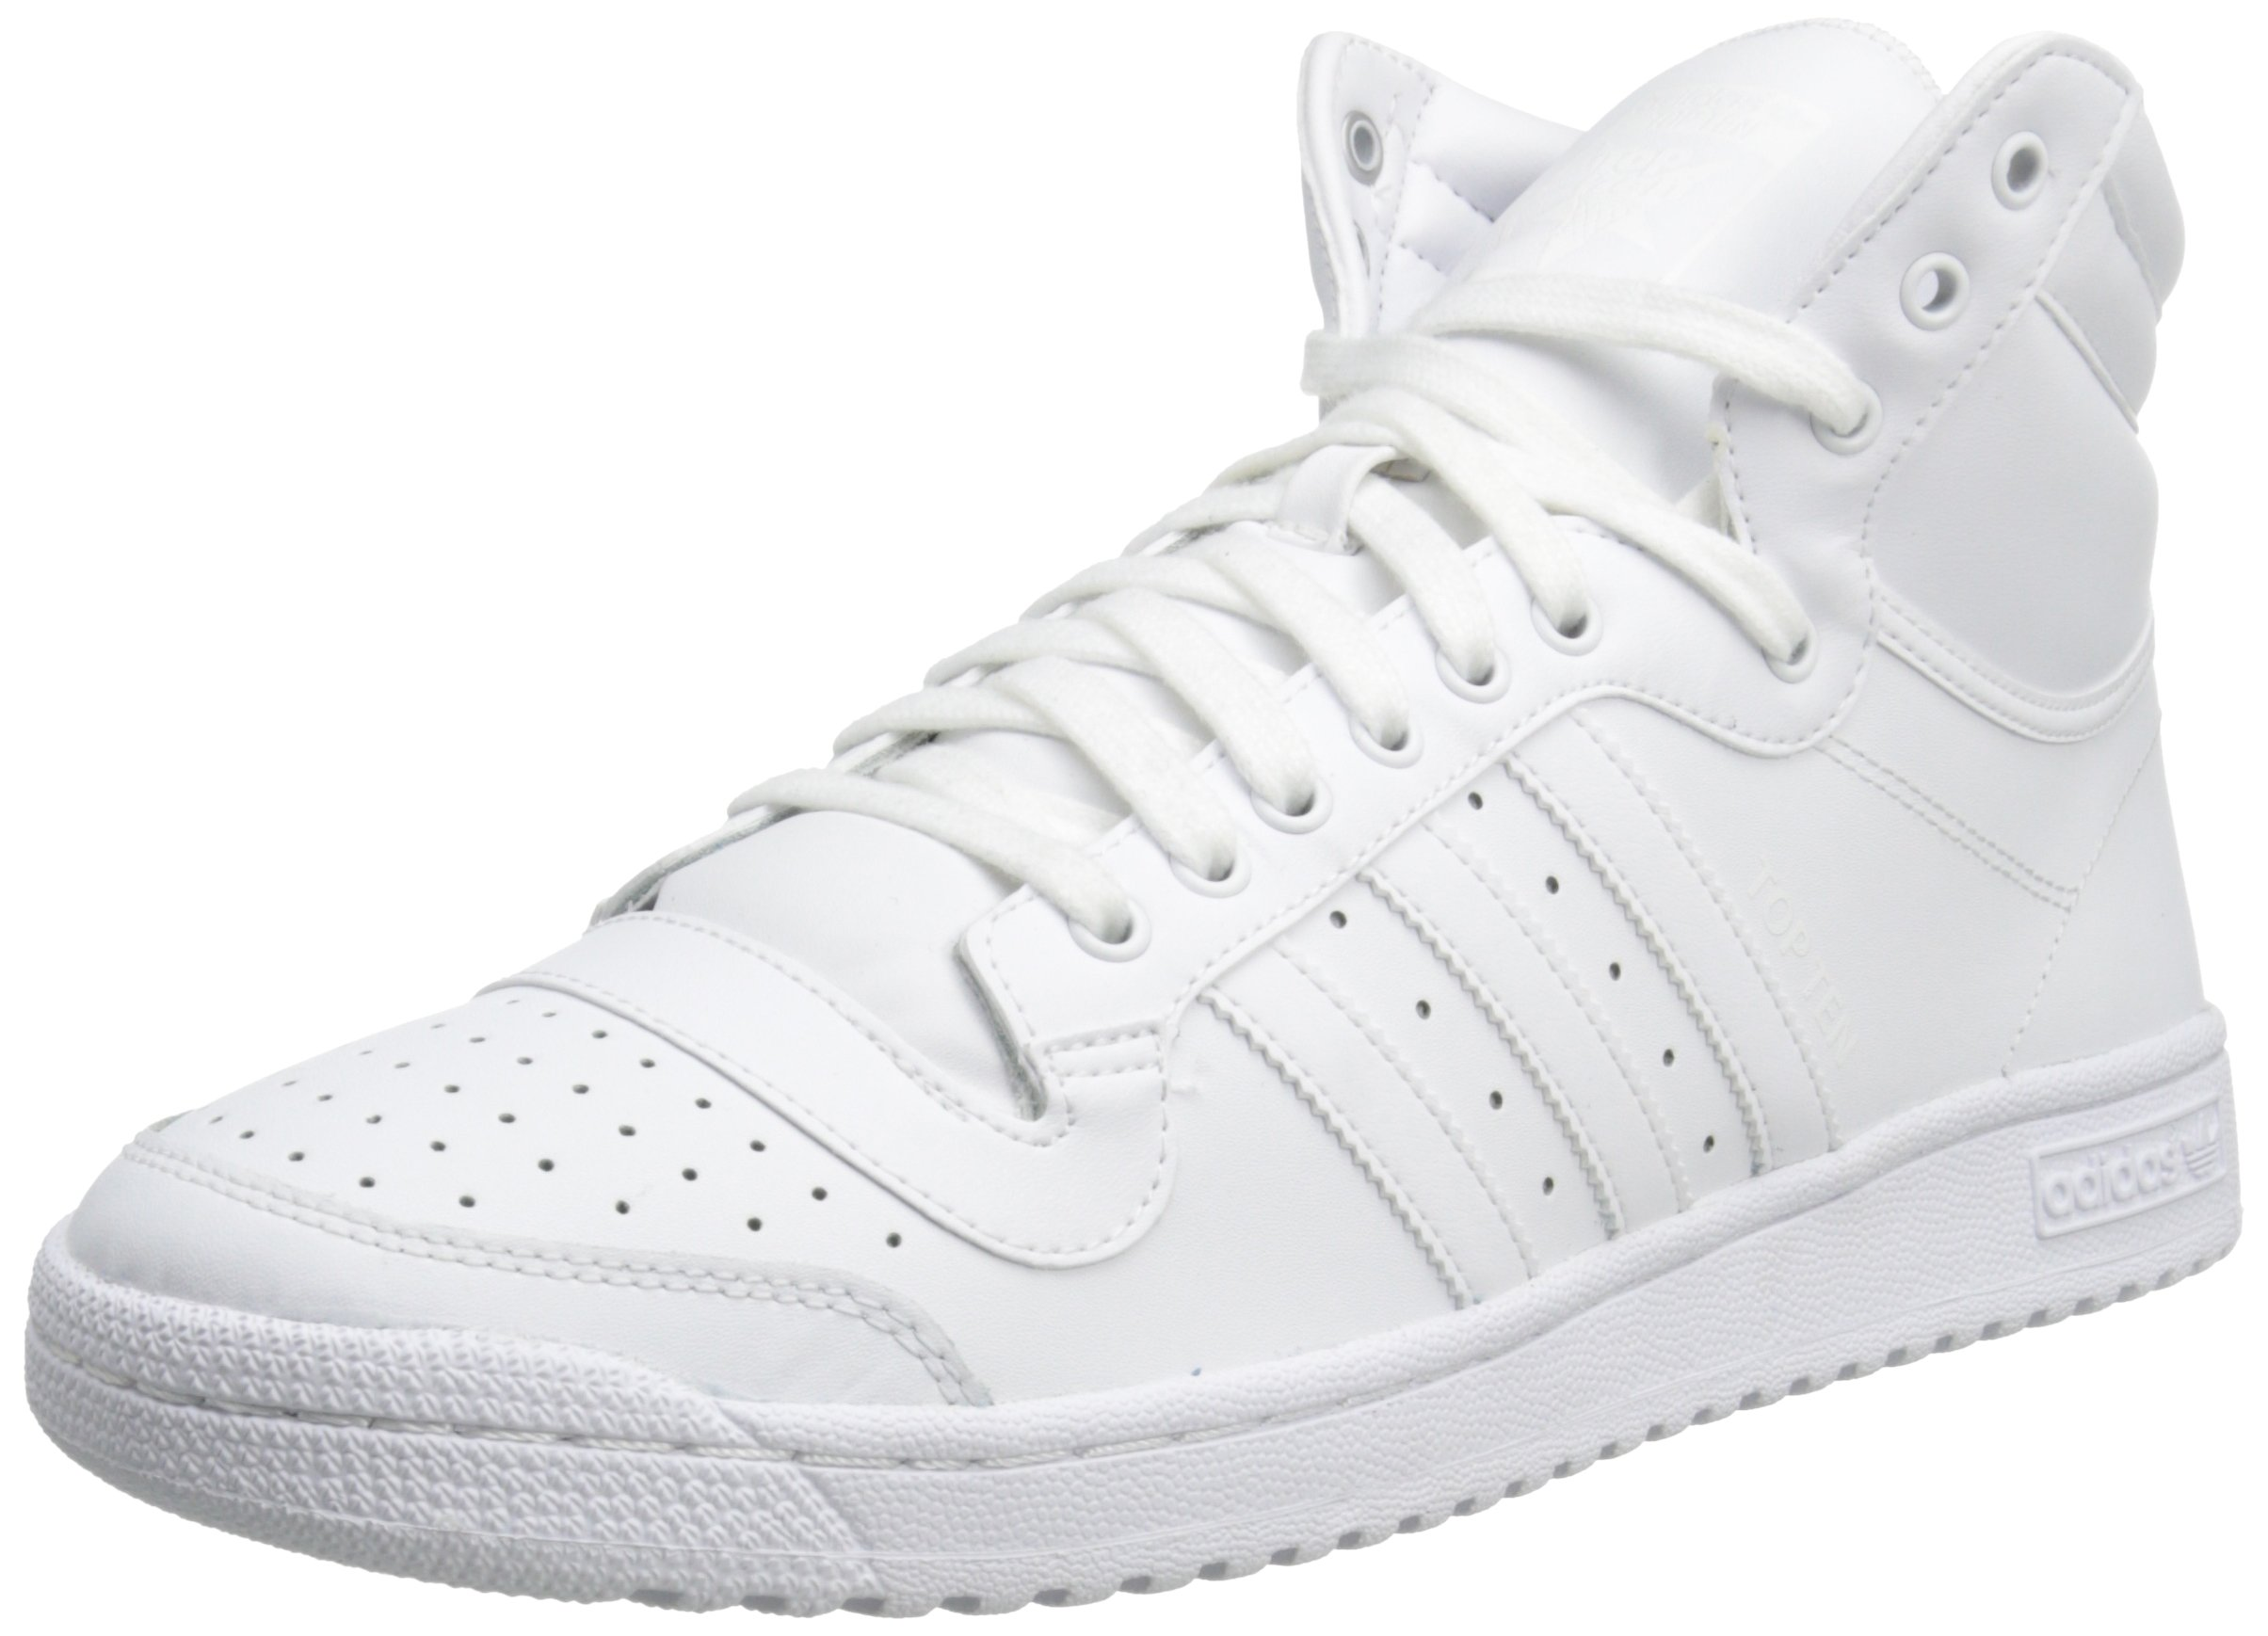 bad67e8cddd Galleon - Adidas Originals Men s Top Ten Hi Basketball Shoe